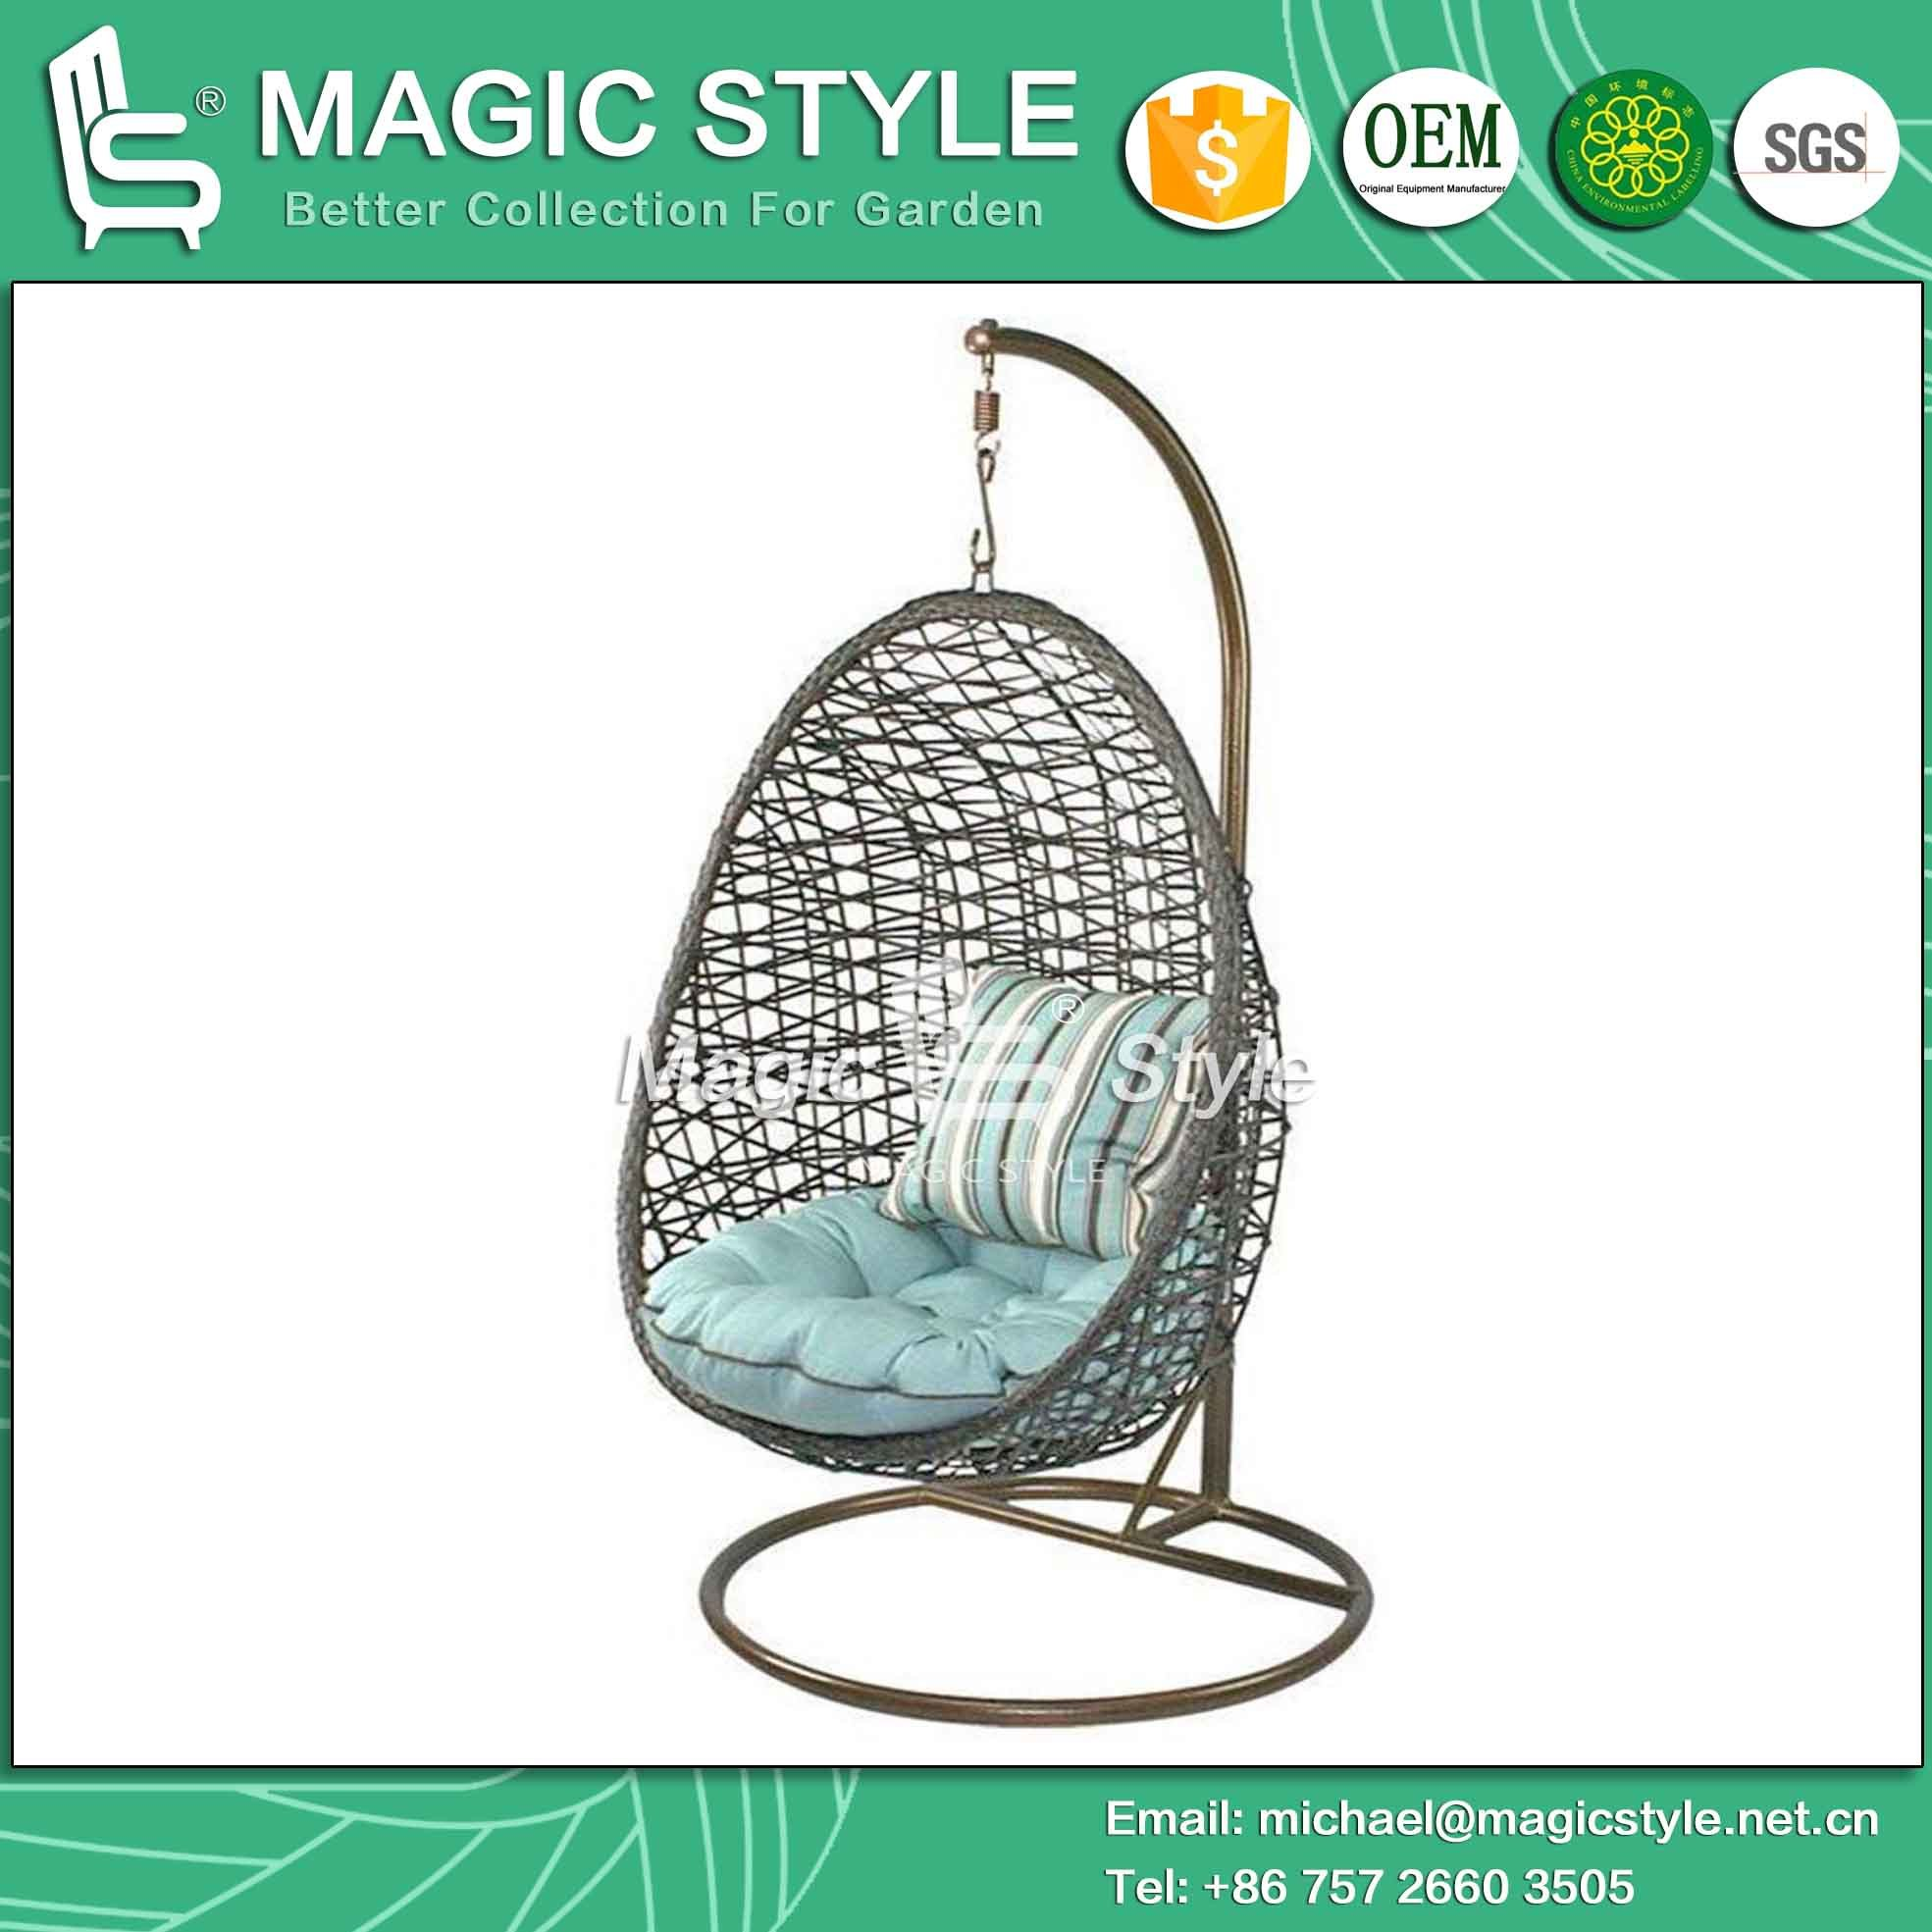 stand swinging arc porch hammock with chaise l hanging canopy chair air lounger swing